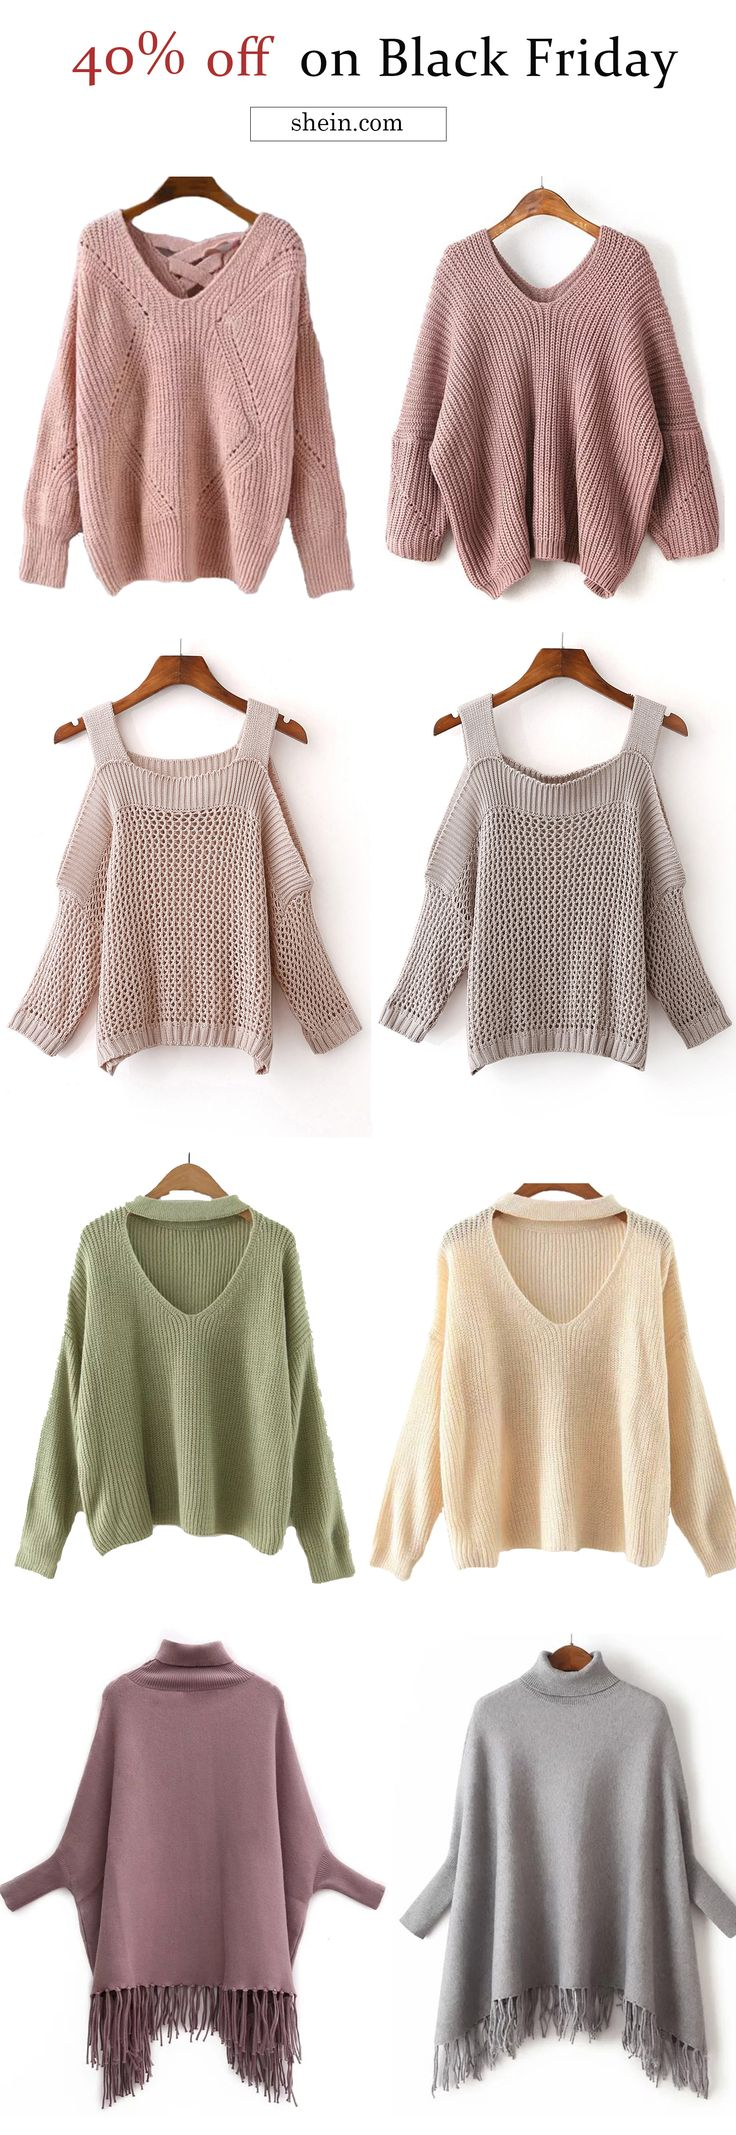 Cozy sweater collect for fall/winter. Free shipping & 40% off for Black Friday!